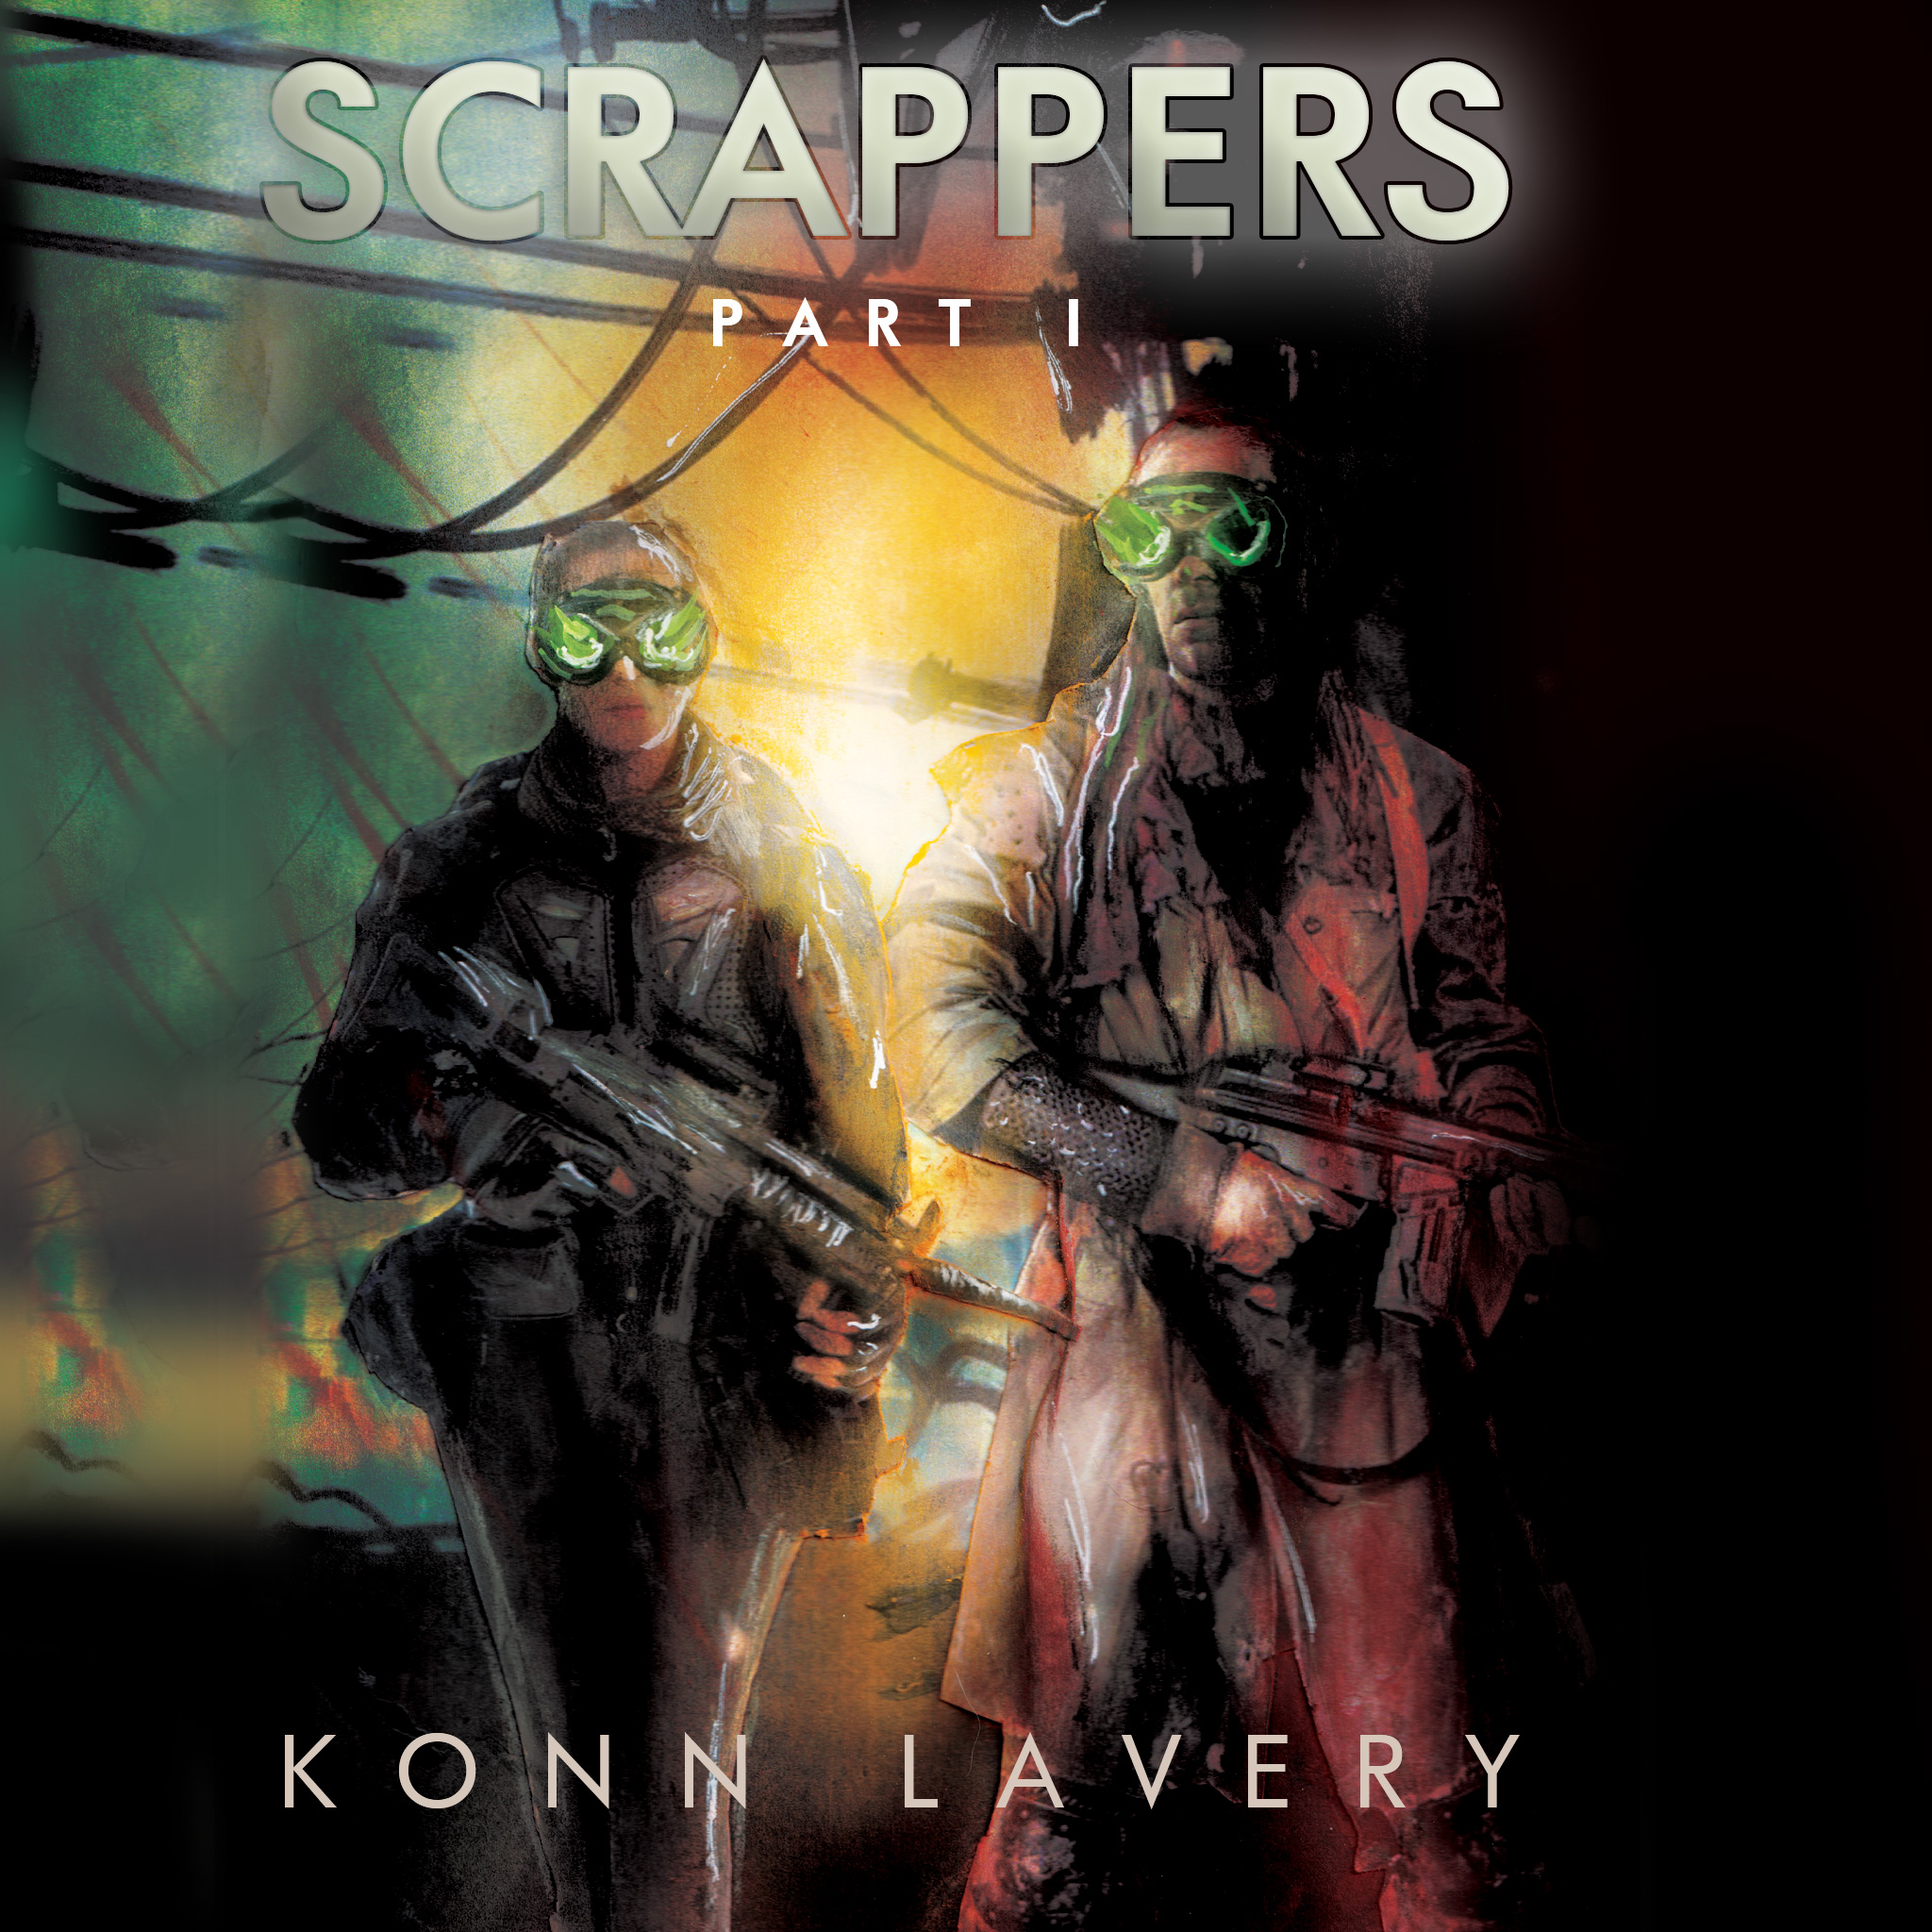 Scrappers by Konn Lavery